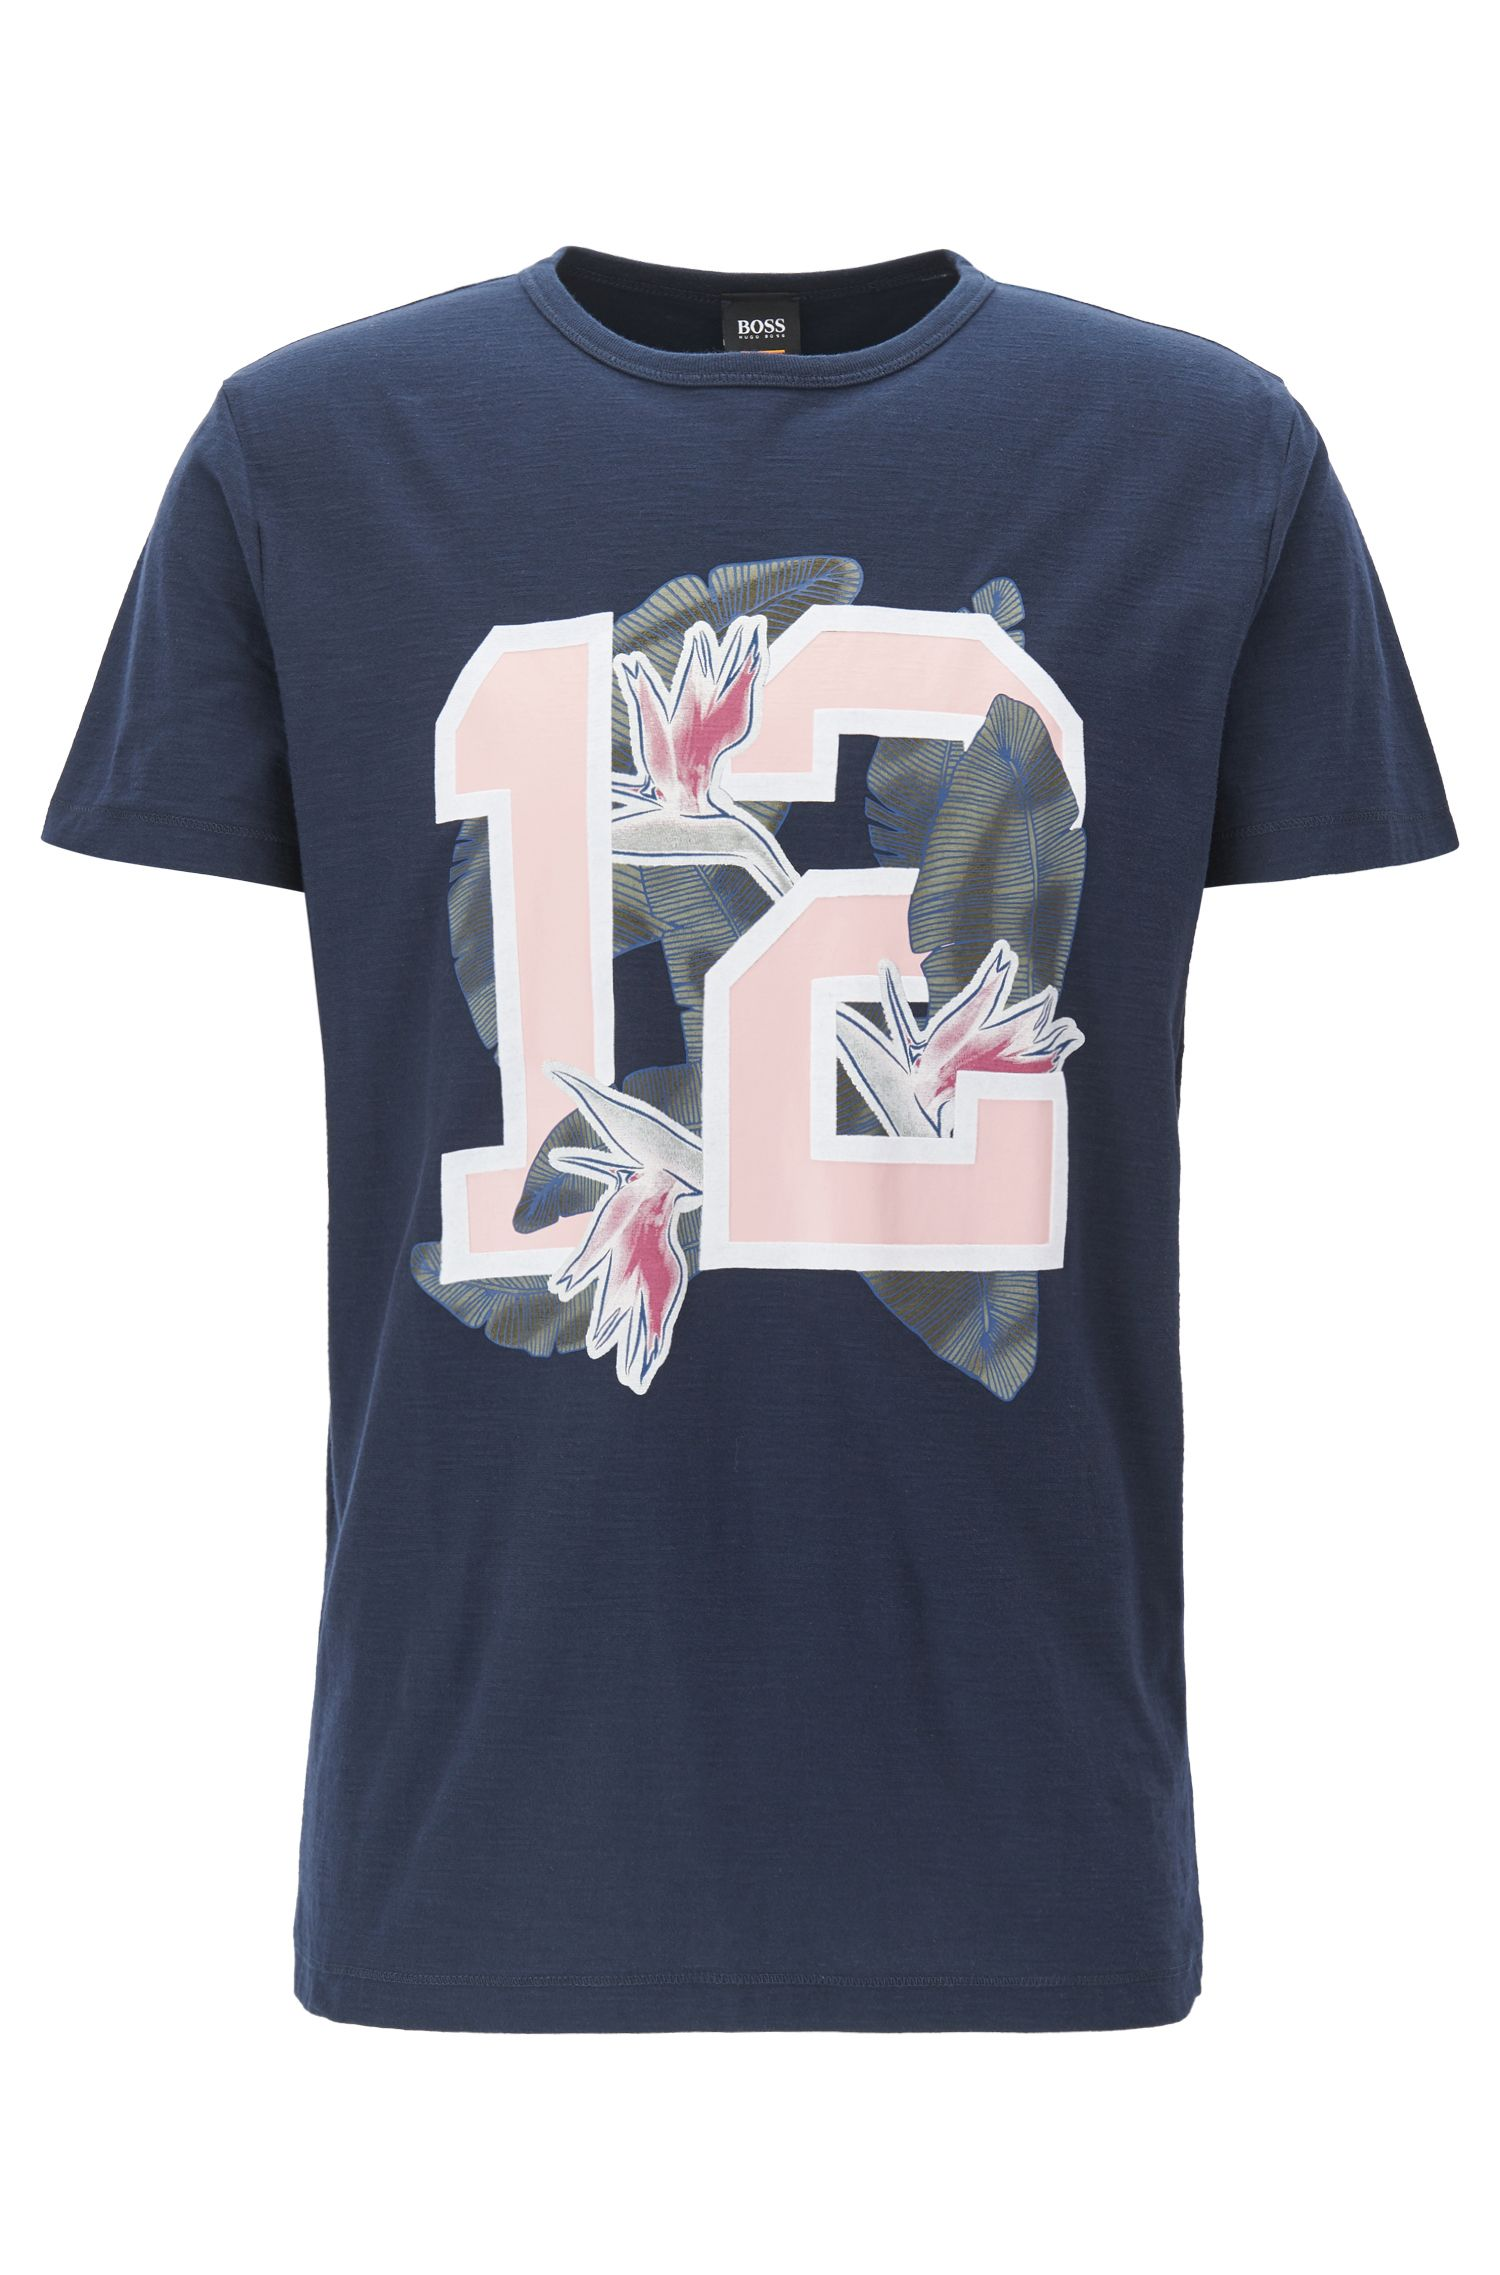 Relaxed-fit cotton jersey T-shirt with mixed graphic print